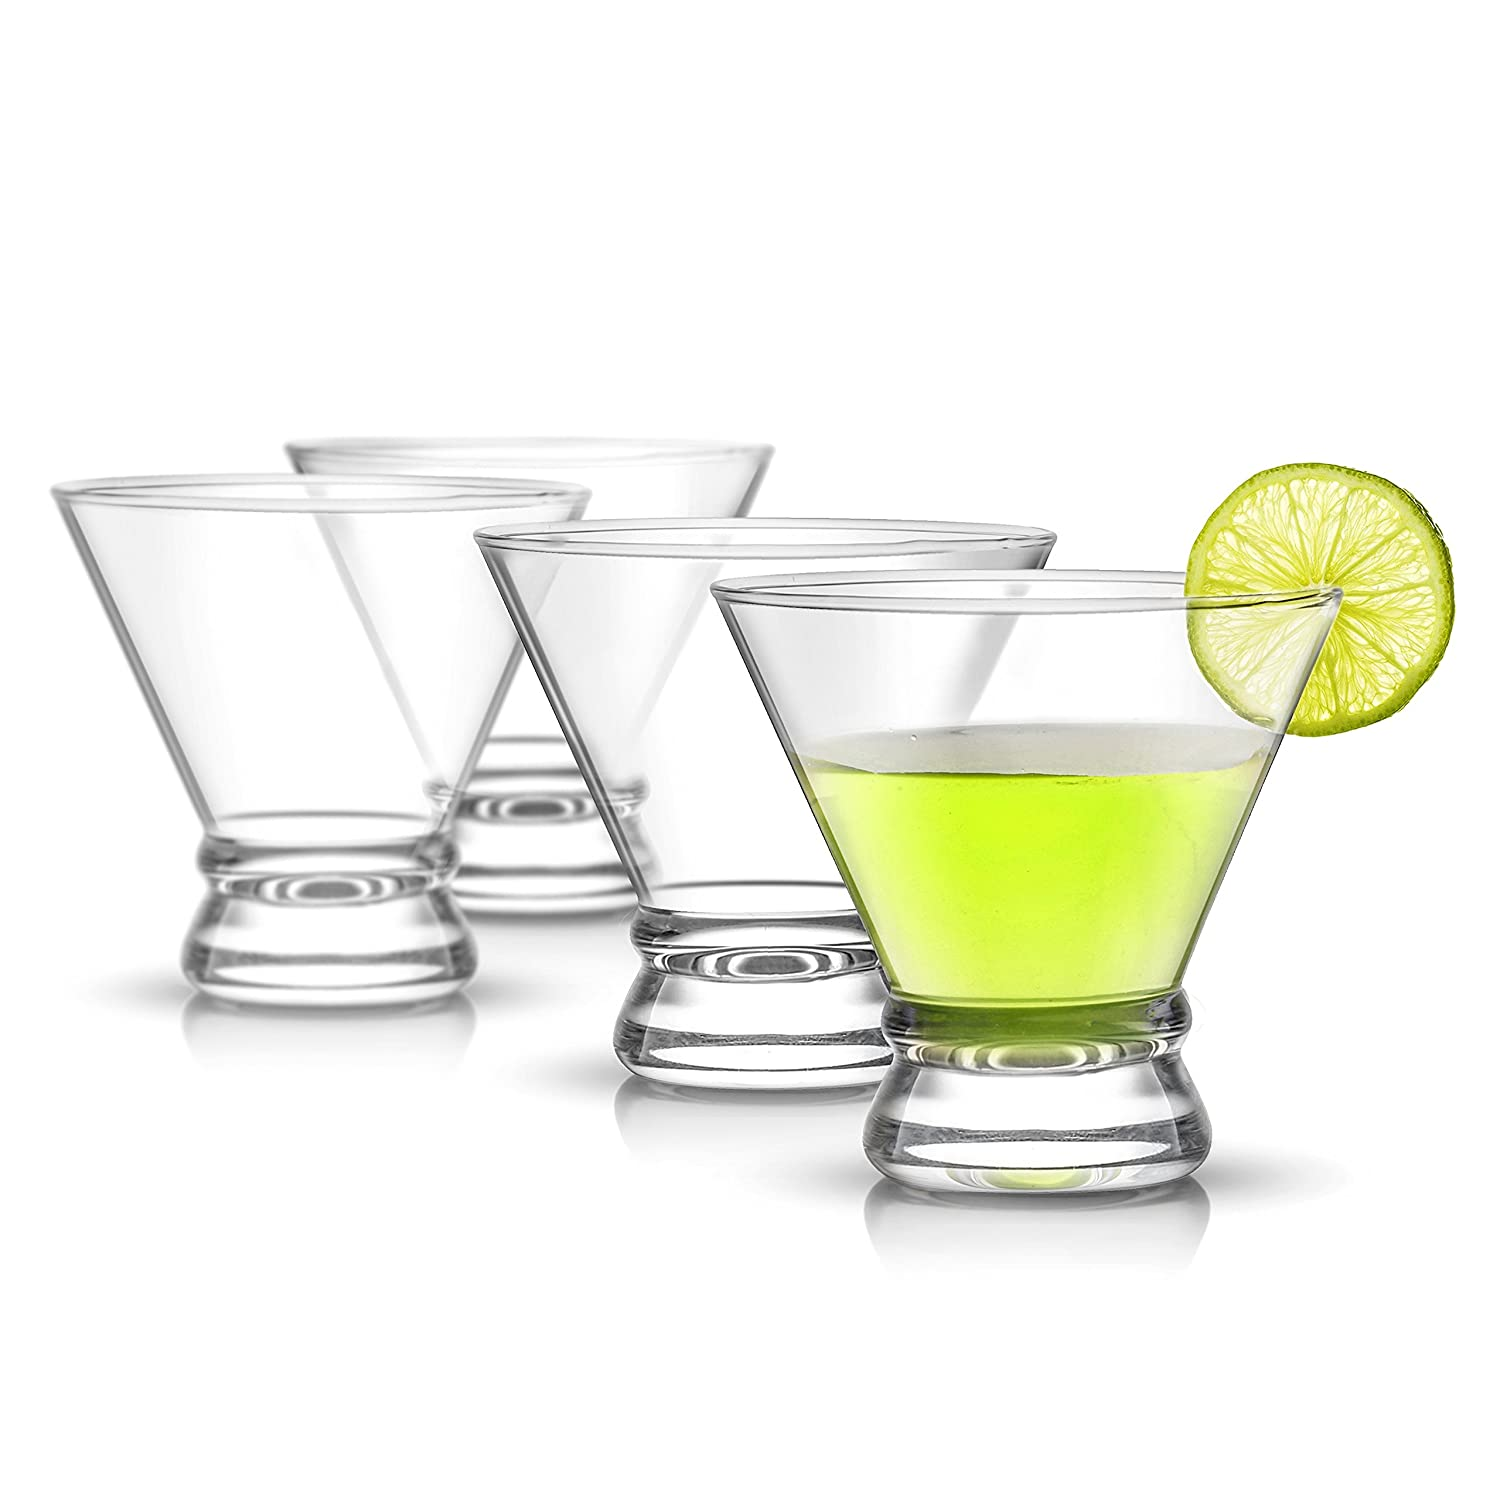 JoyJolt Afina 4-Piece Cocktail Glasses Set, 8-Ounce Martini Glasses JG10222